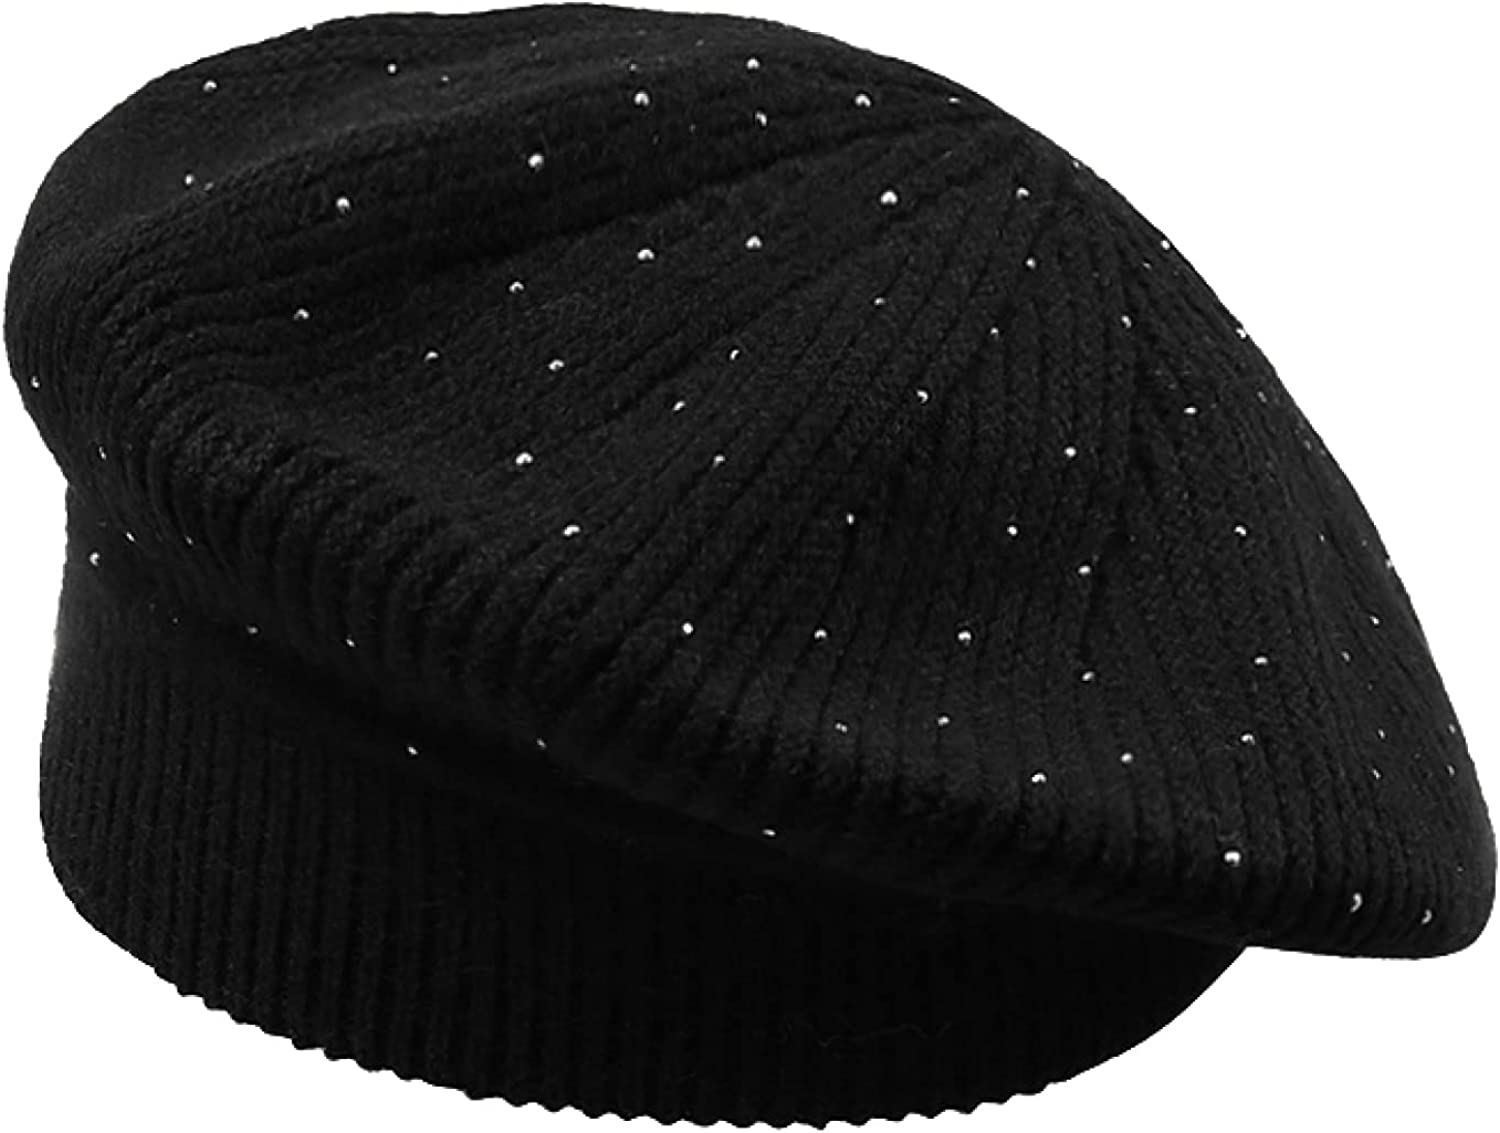 AOBRICON Knitted Sales results No. 1 favorite Beret Hats for Women Winter Ship Outdoor Ladies